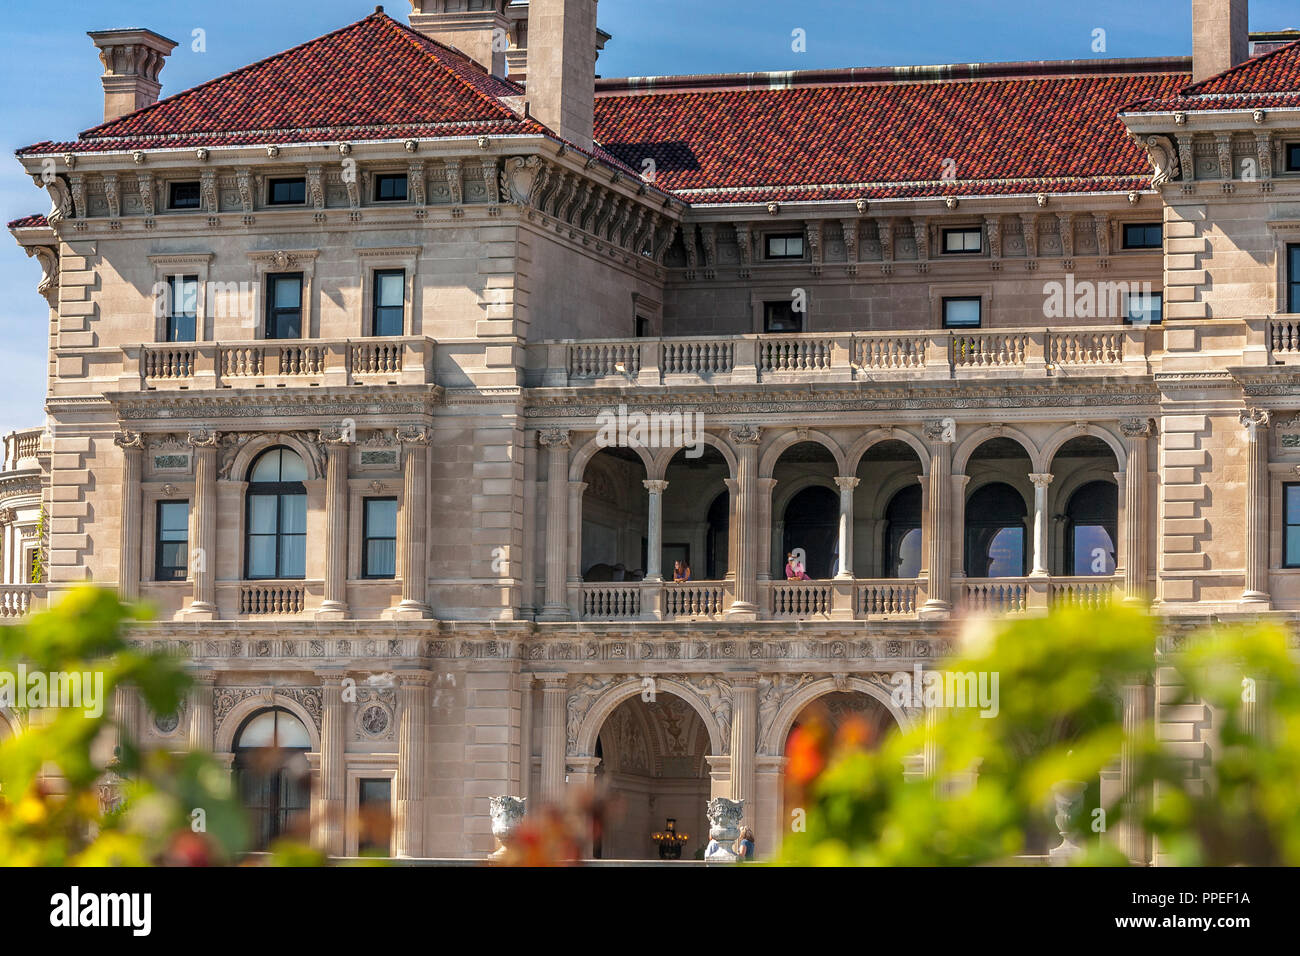 The Breakers is a Vanderbilt mansion located on Ochre Point Avenue, Newport, Rhode Island ,The Breakers is the grandest of all Newport's Mansions - Stock Image